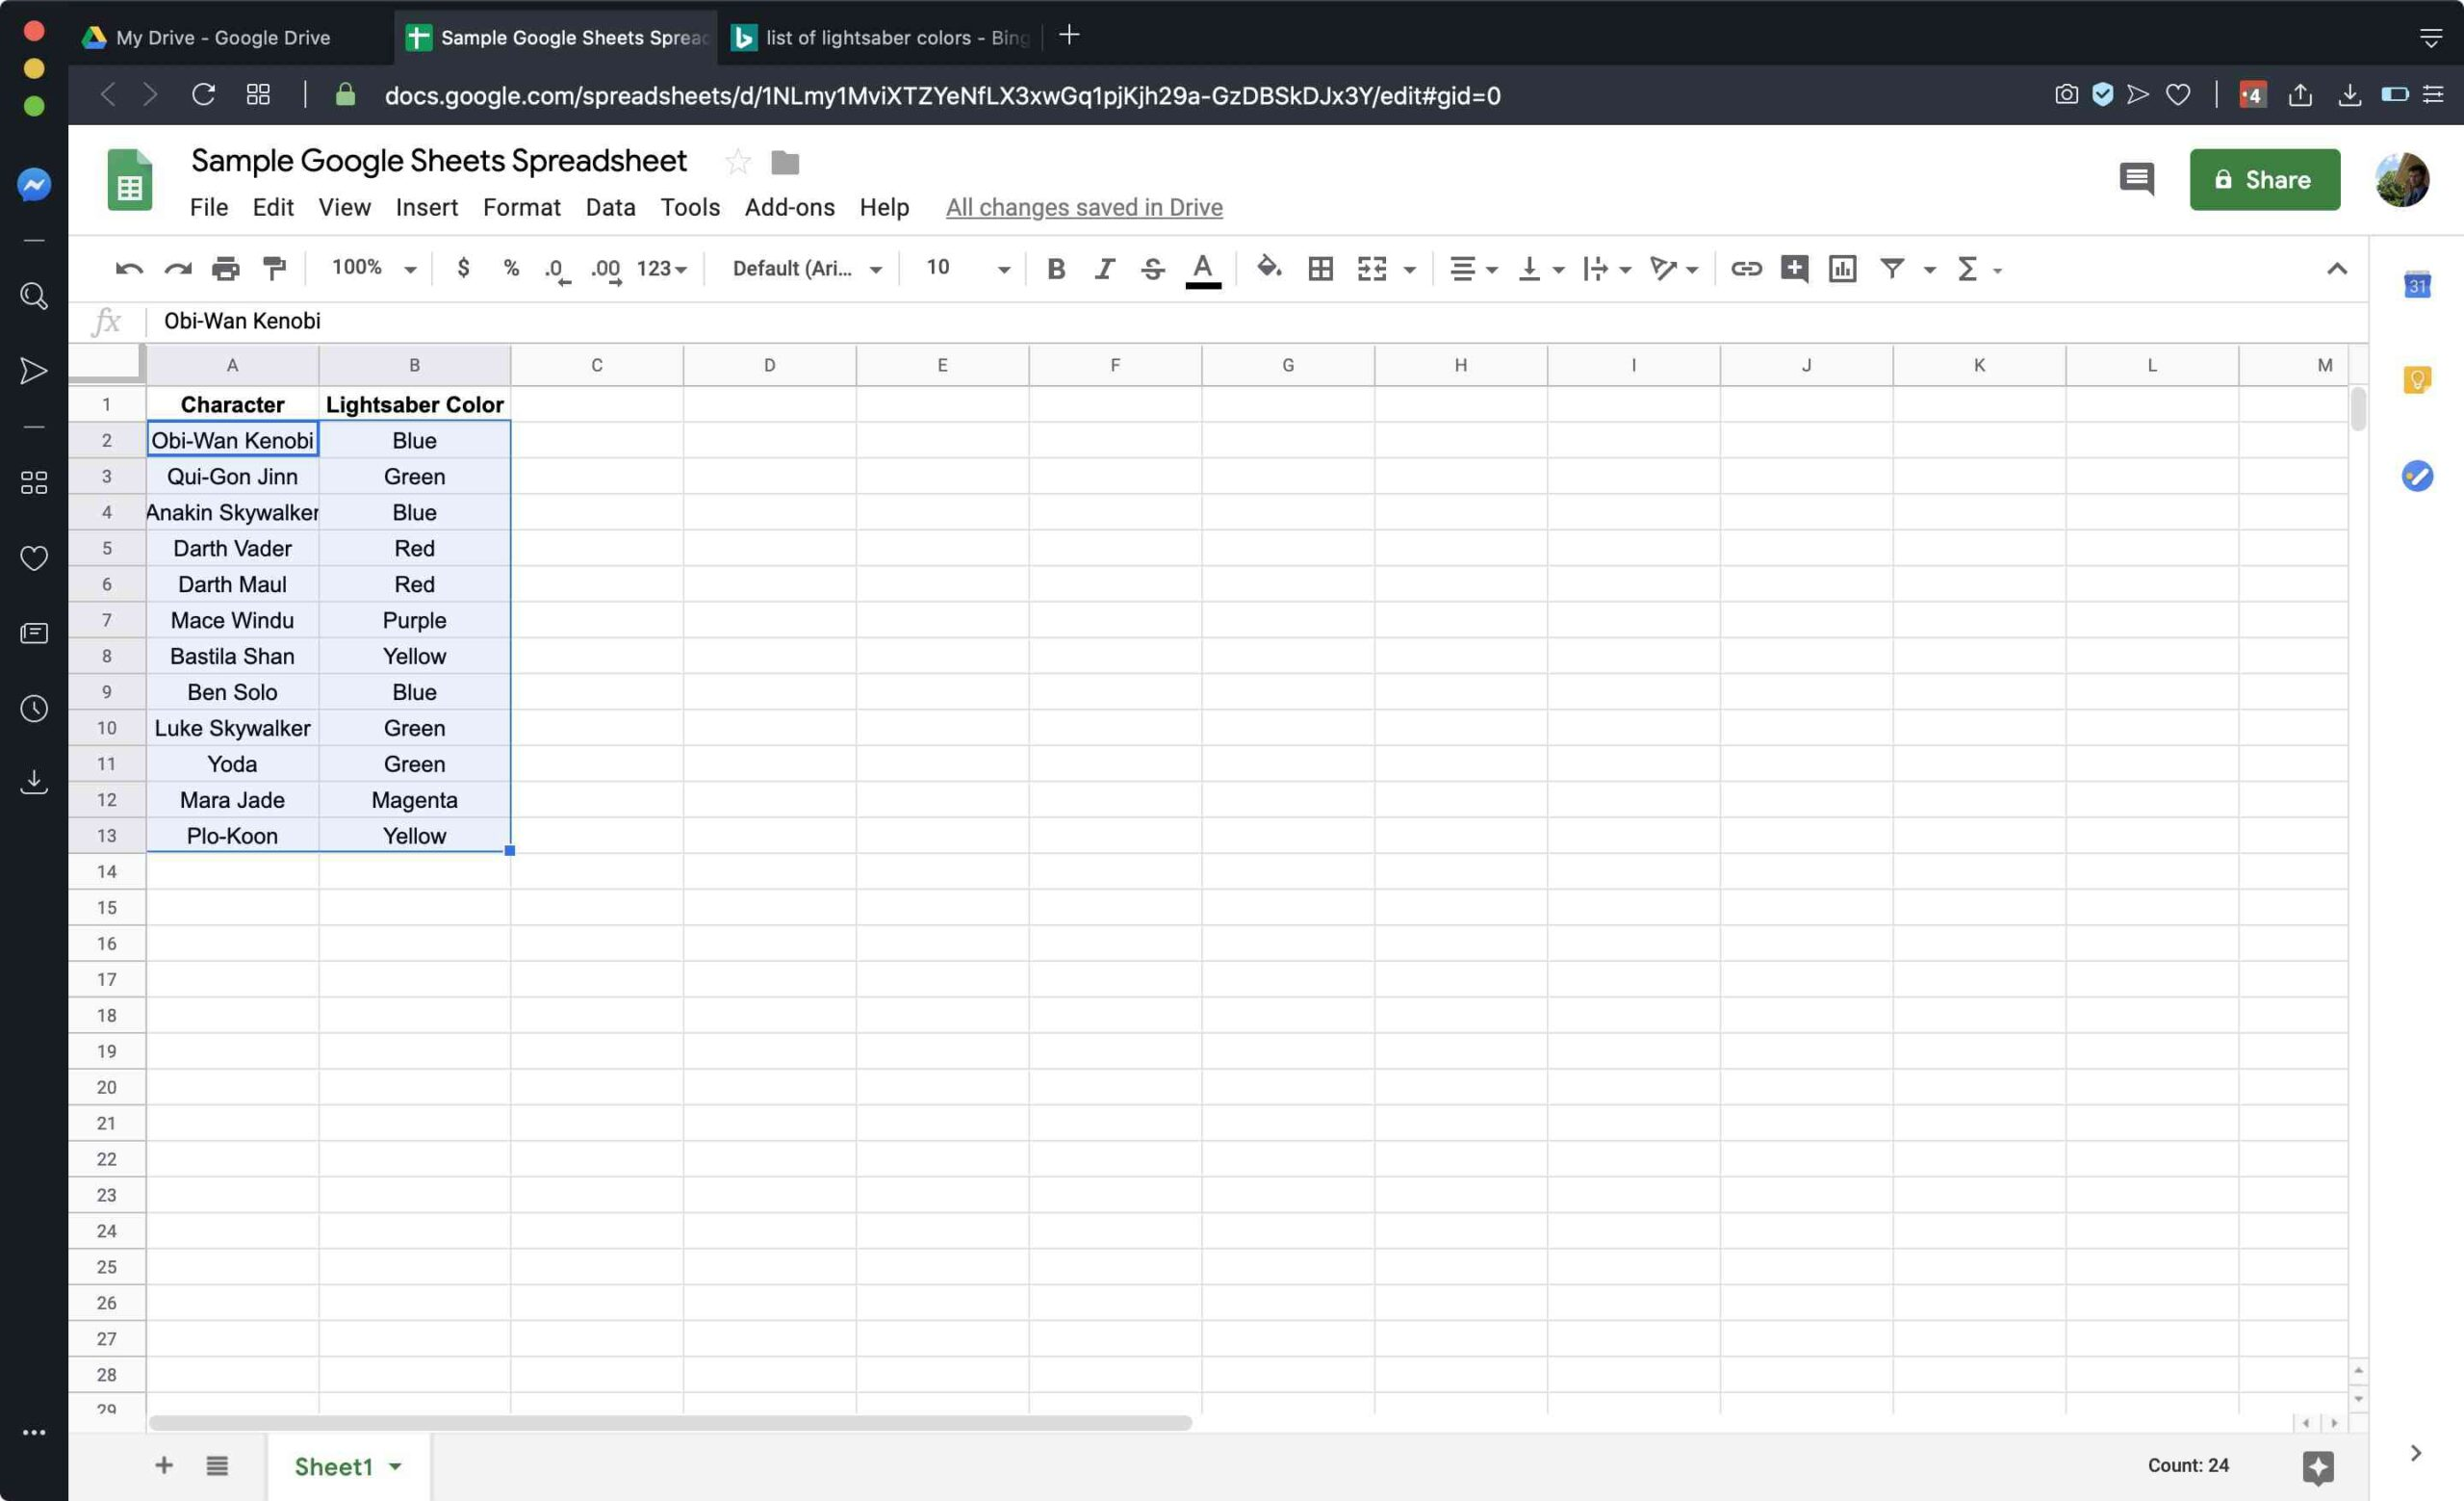 Full Size of Spreadsheet Free Spreadsheets Templates For Windows Excel Online